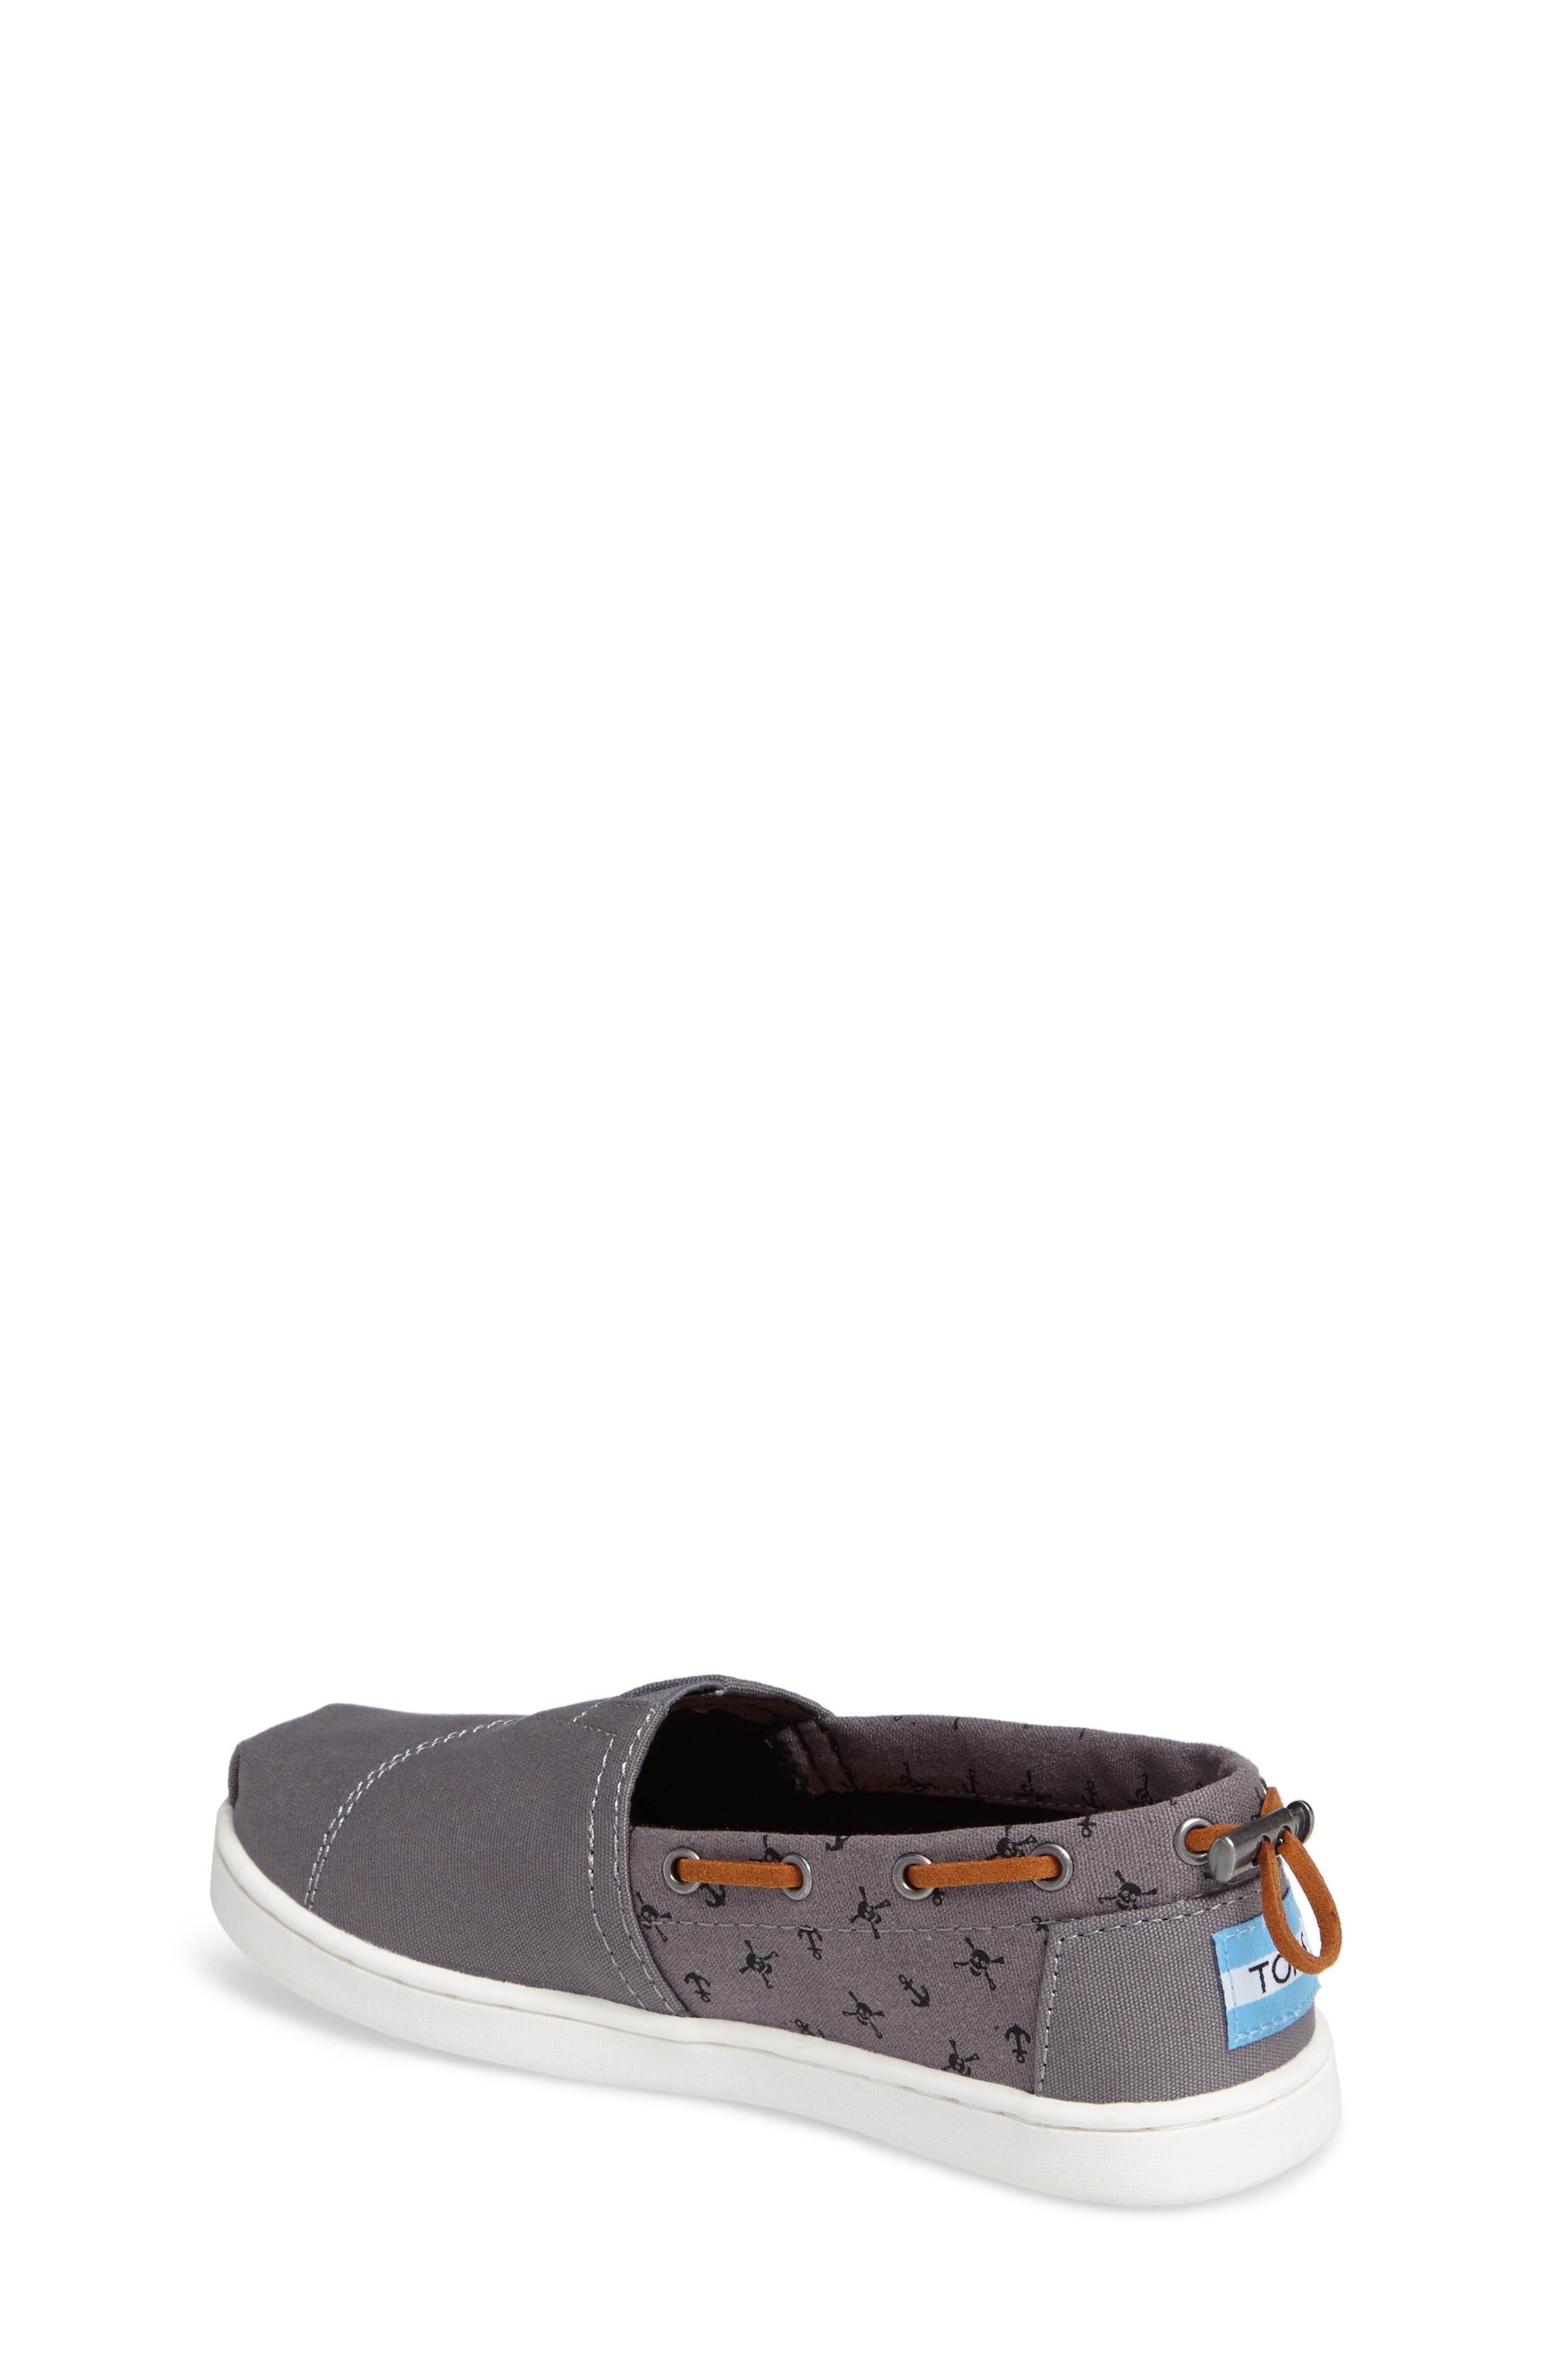 Alternate Image 2  - TOMS Bimini Boat Shoe Sneaker (Toddler, Little Kid & Big Kid)